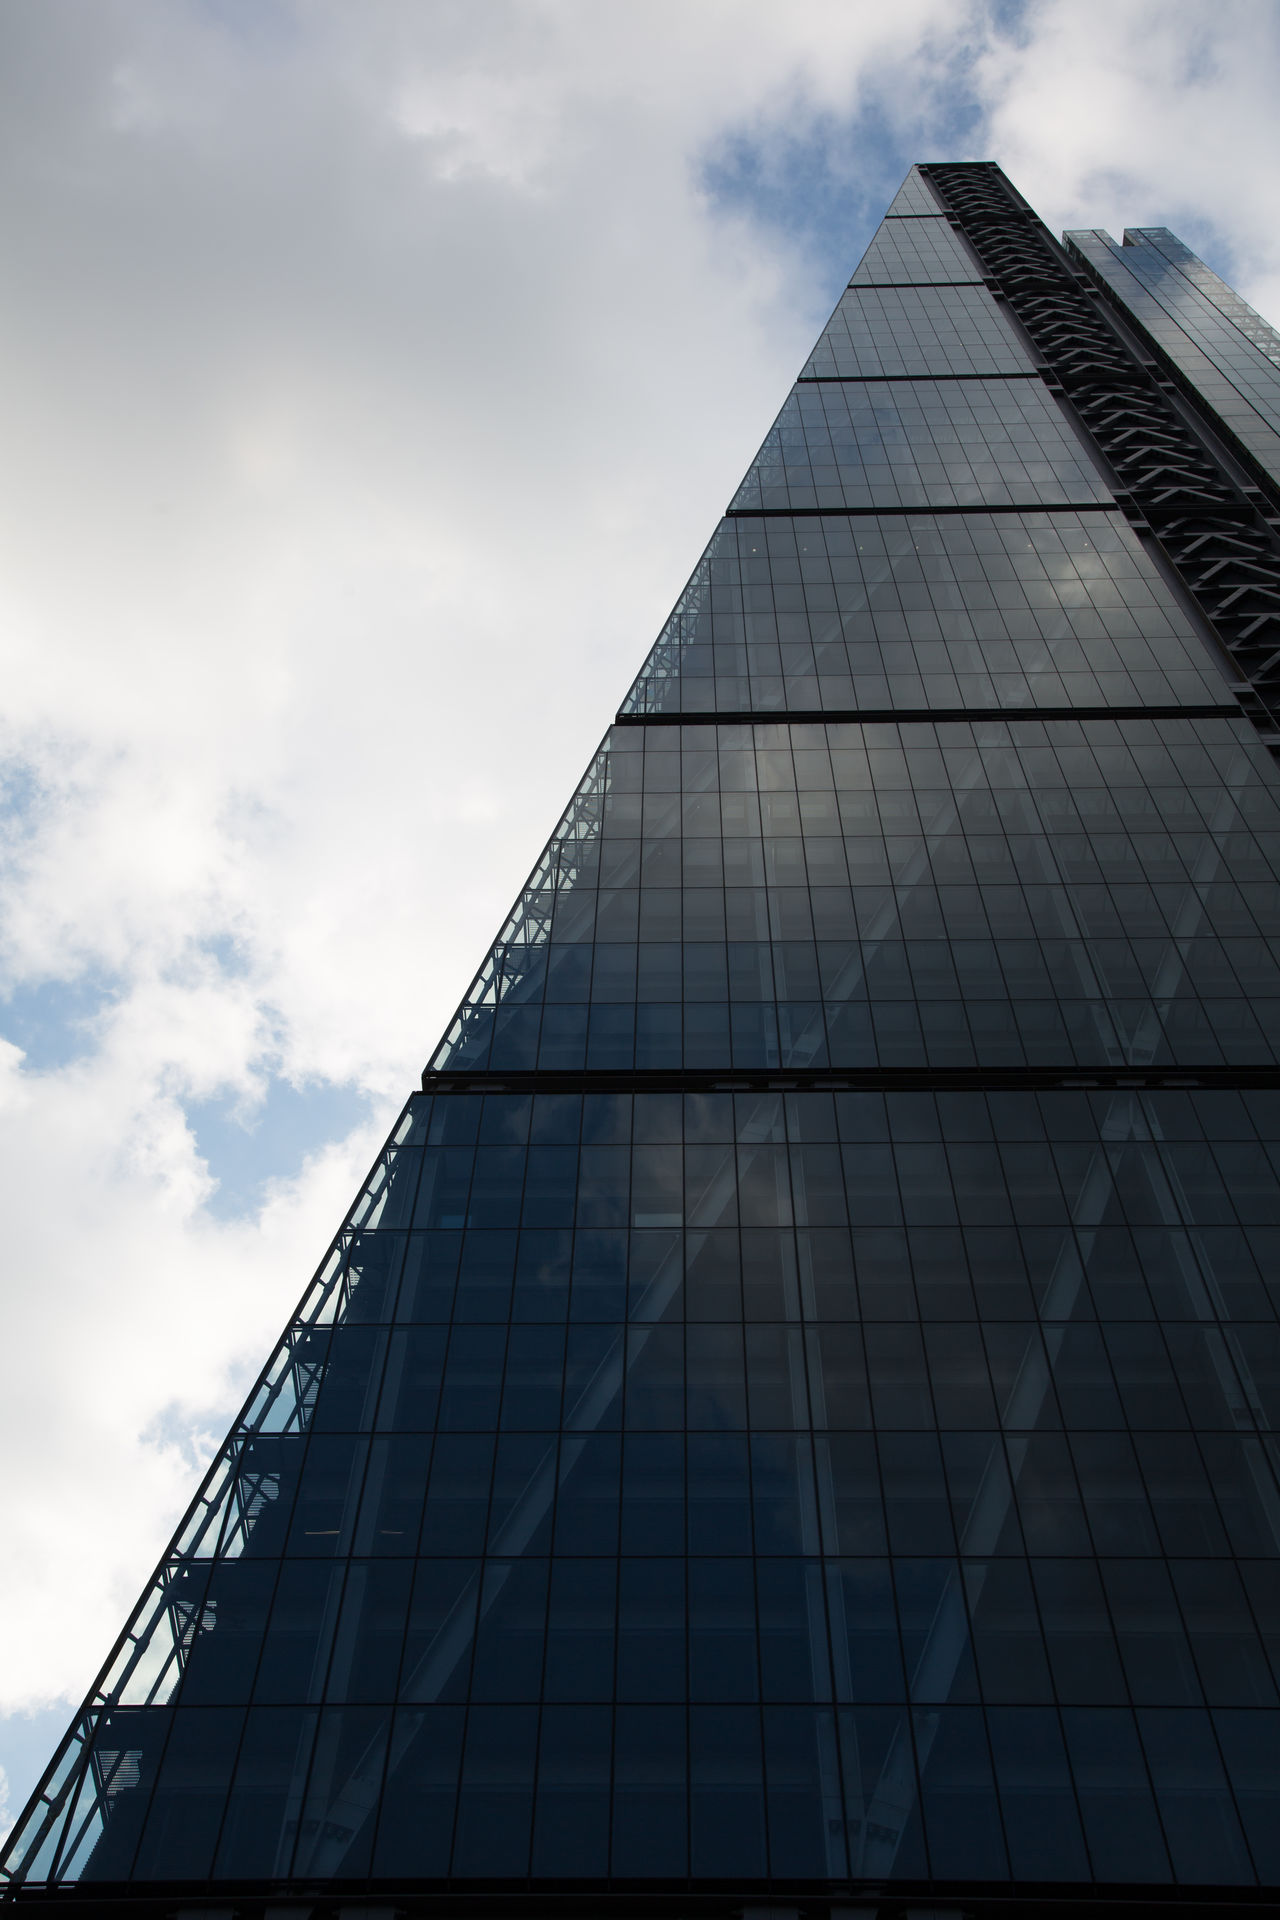 Architecture Building Exterior Built Structure City Cloud - Sky Day Glass - Material LONDON❤ Low Angle View Modern No People Outdoors Sky Skyscraper